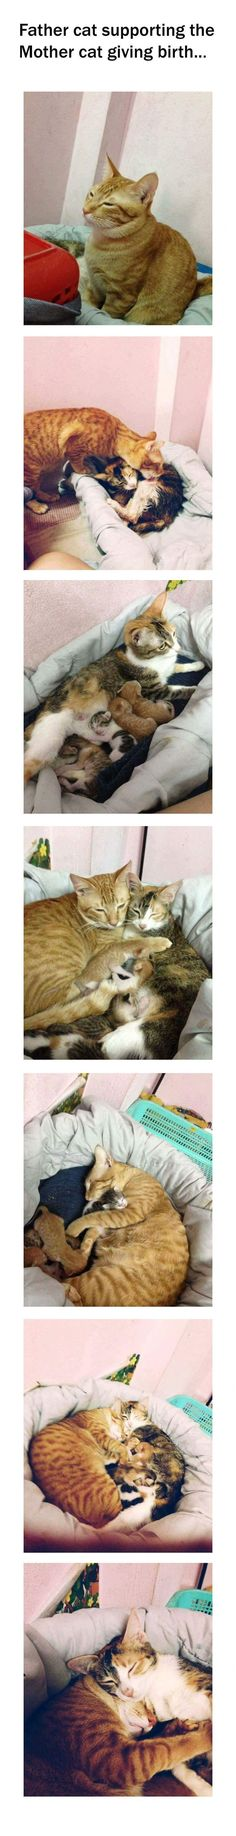 I'm not crying you're crying! - 9GAG #funnycatsfails